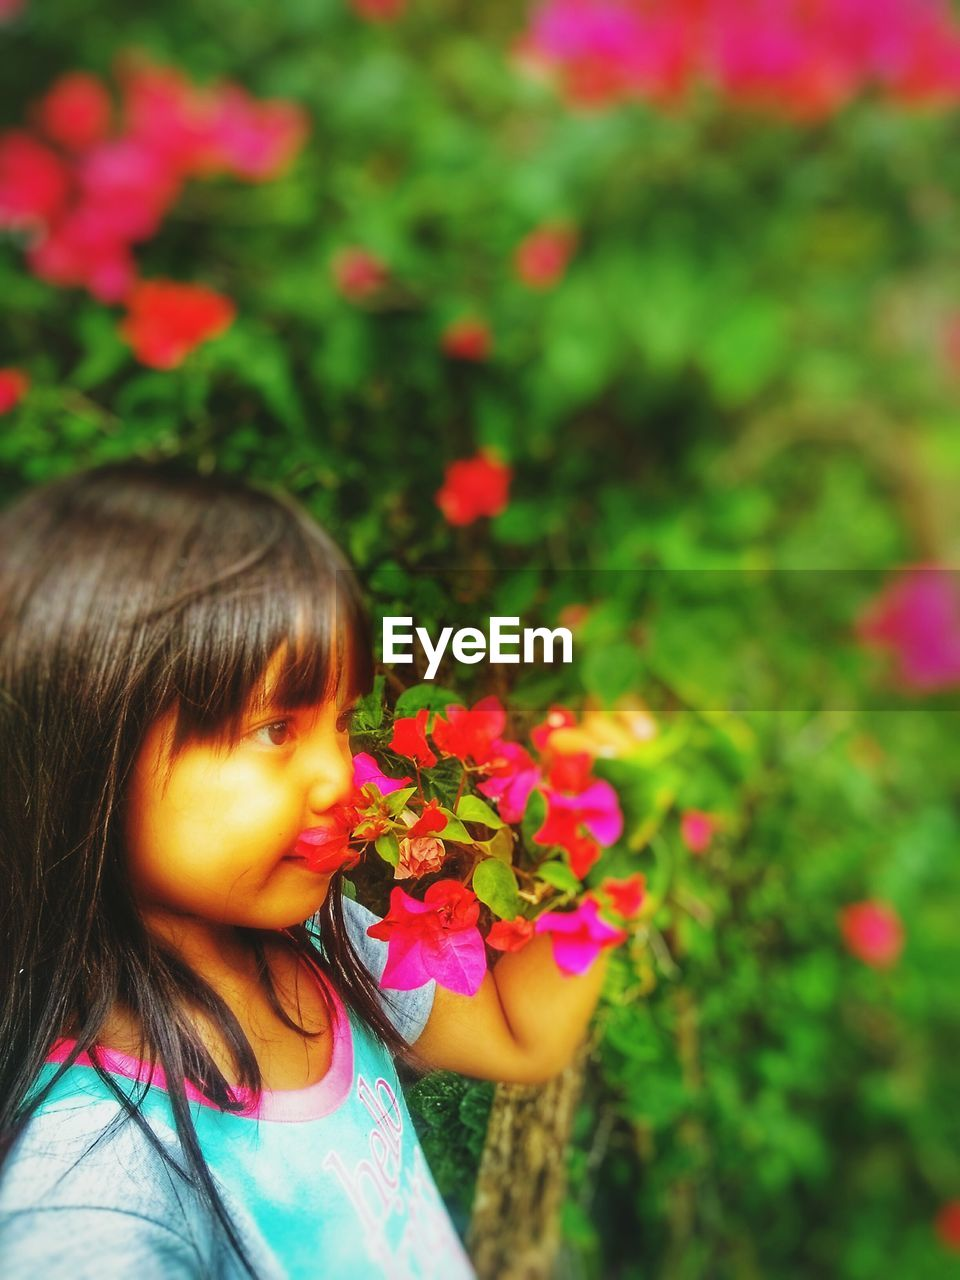 child, flowering plant, childhood, flower, girls, plant, one person, females, women, real people, nature, beauty in nature, leisure activity, innocence, lifestyles, cute, freshness, pink color, focus on foreground, outdoors, flower head